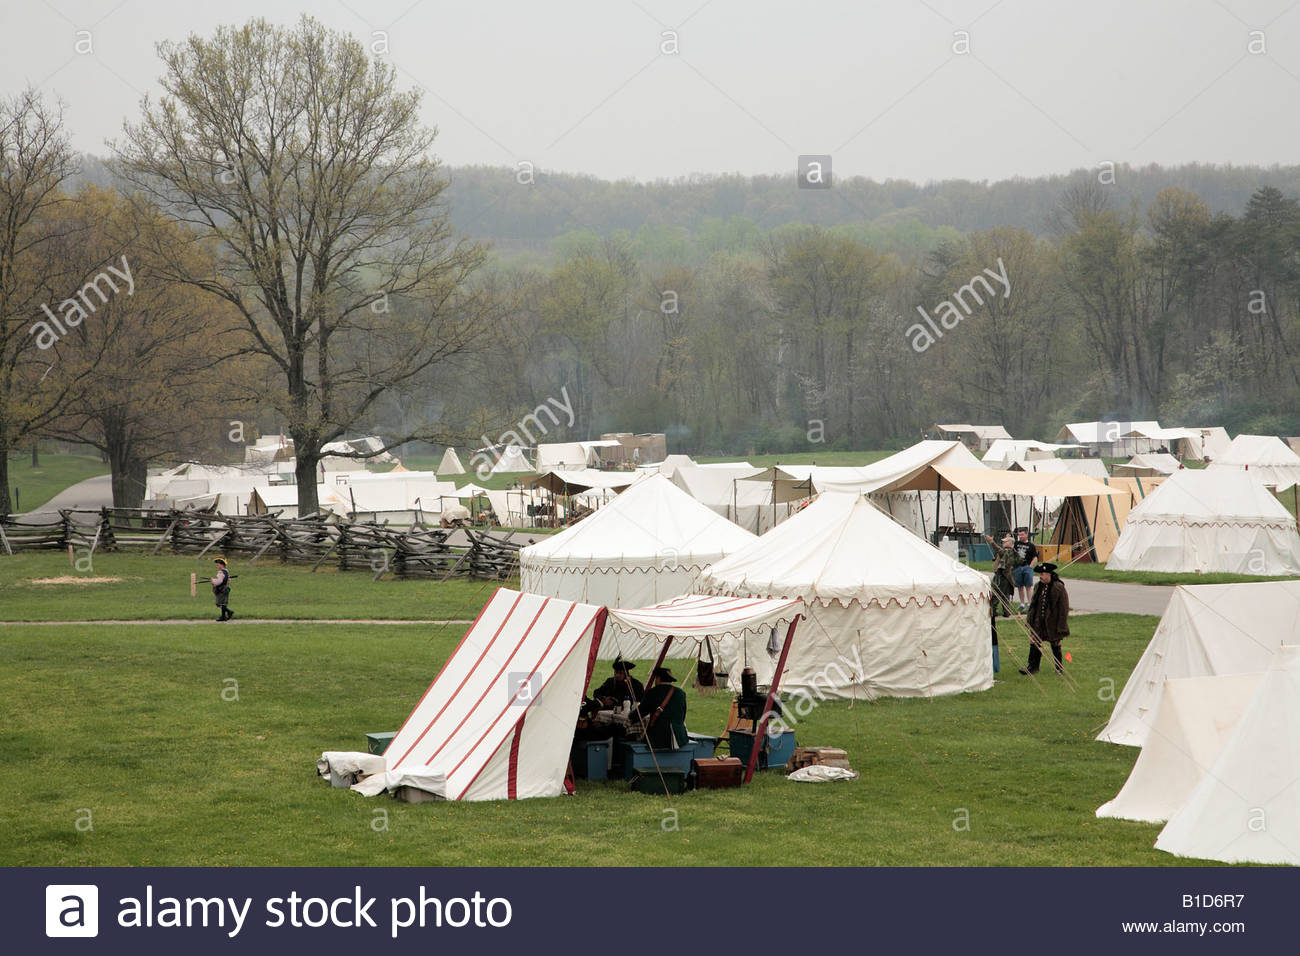 Sutlers' camp at the Market Fair at an eighteenth-century fort in